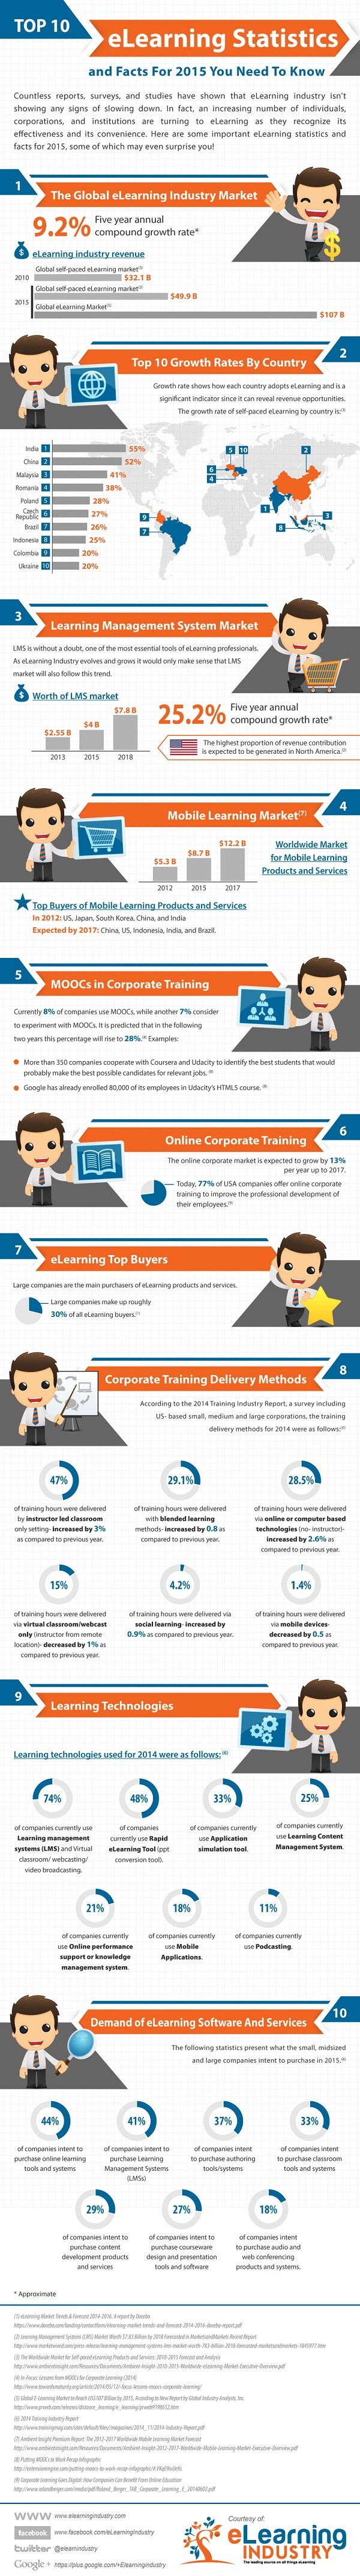 20150123-Top-10-eLearning-Stats-for-2015-1.jpg